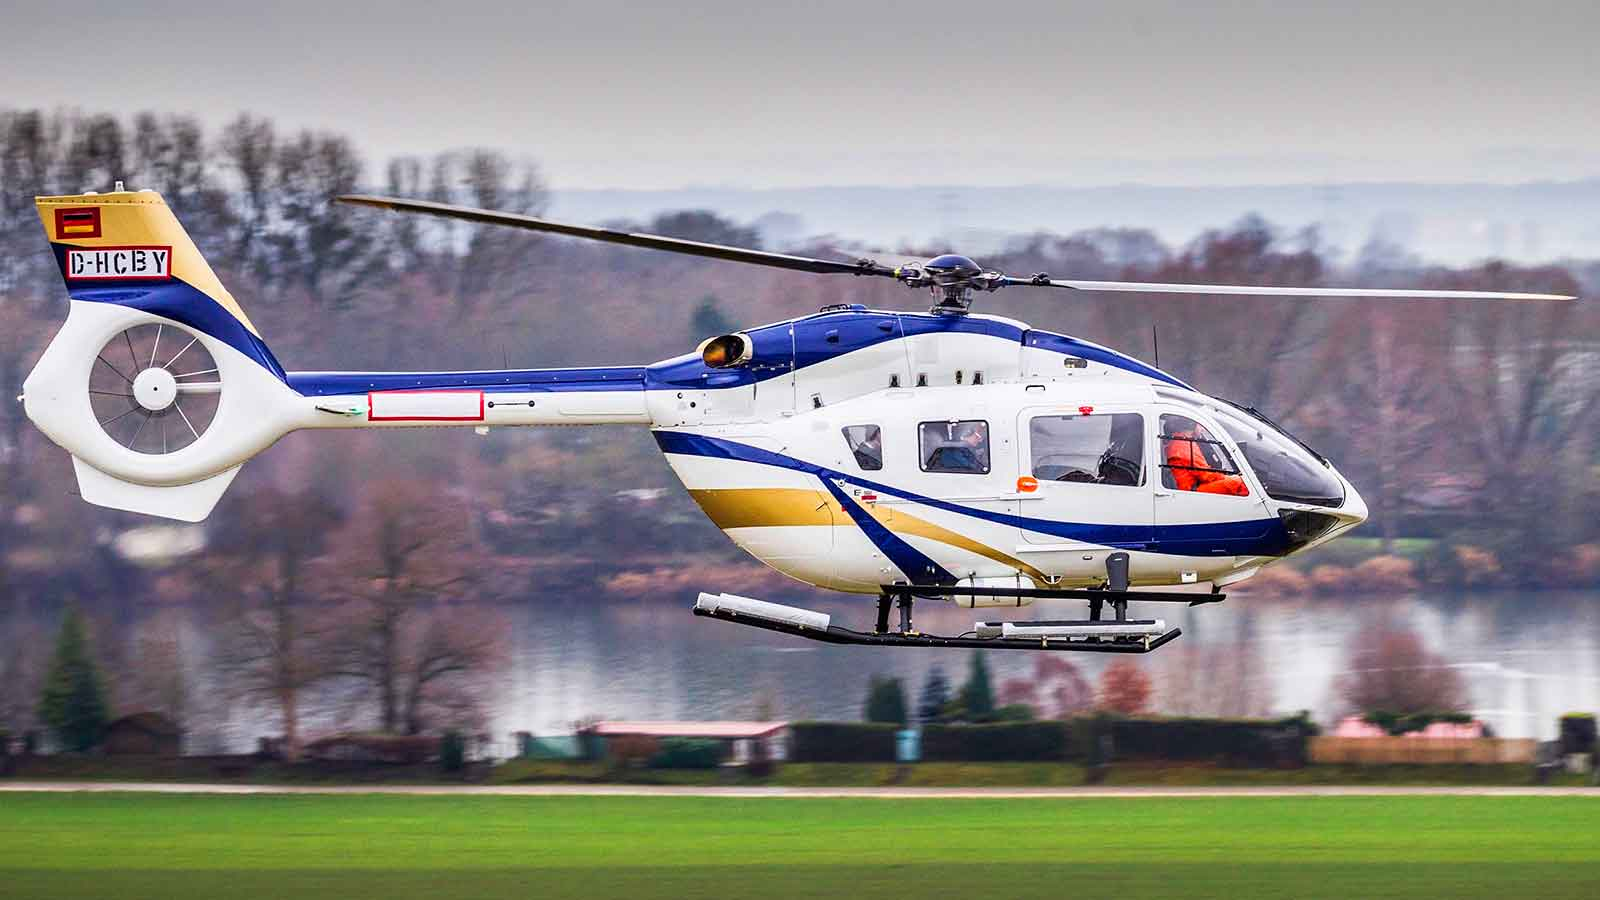 K rfez aviation takes delivery of first h145 mercedes benz for Mercedes benz helicopter price